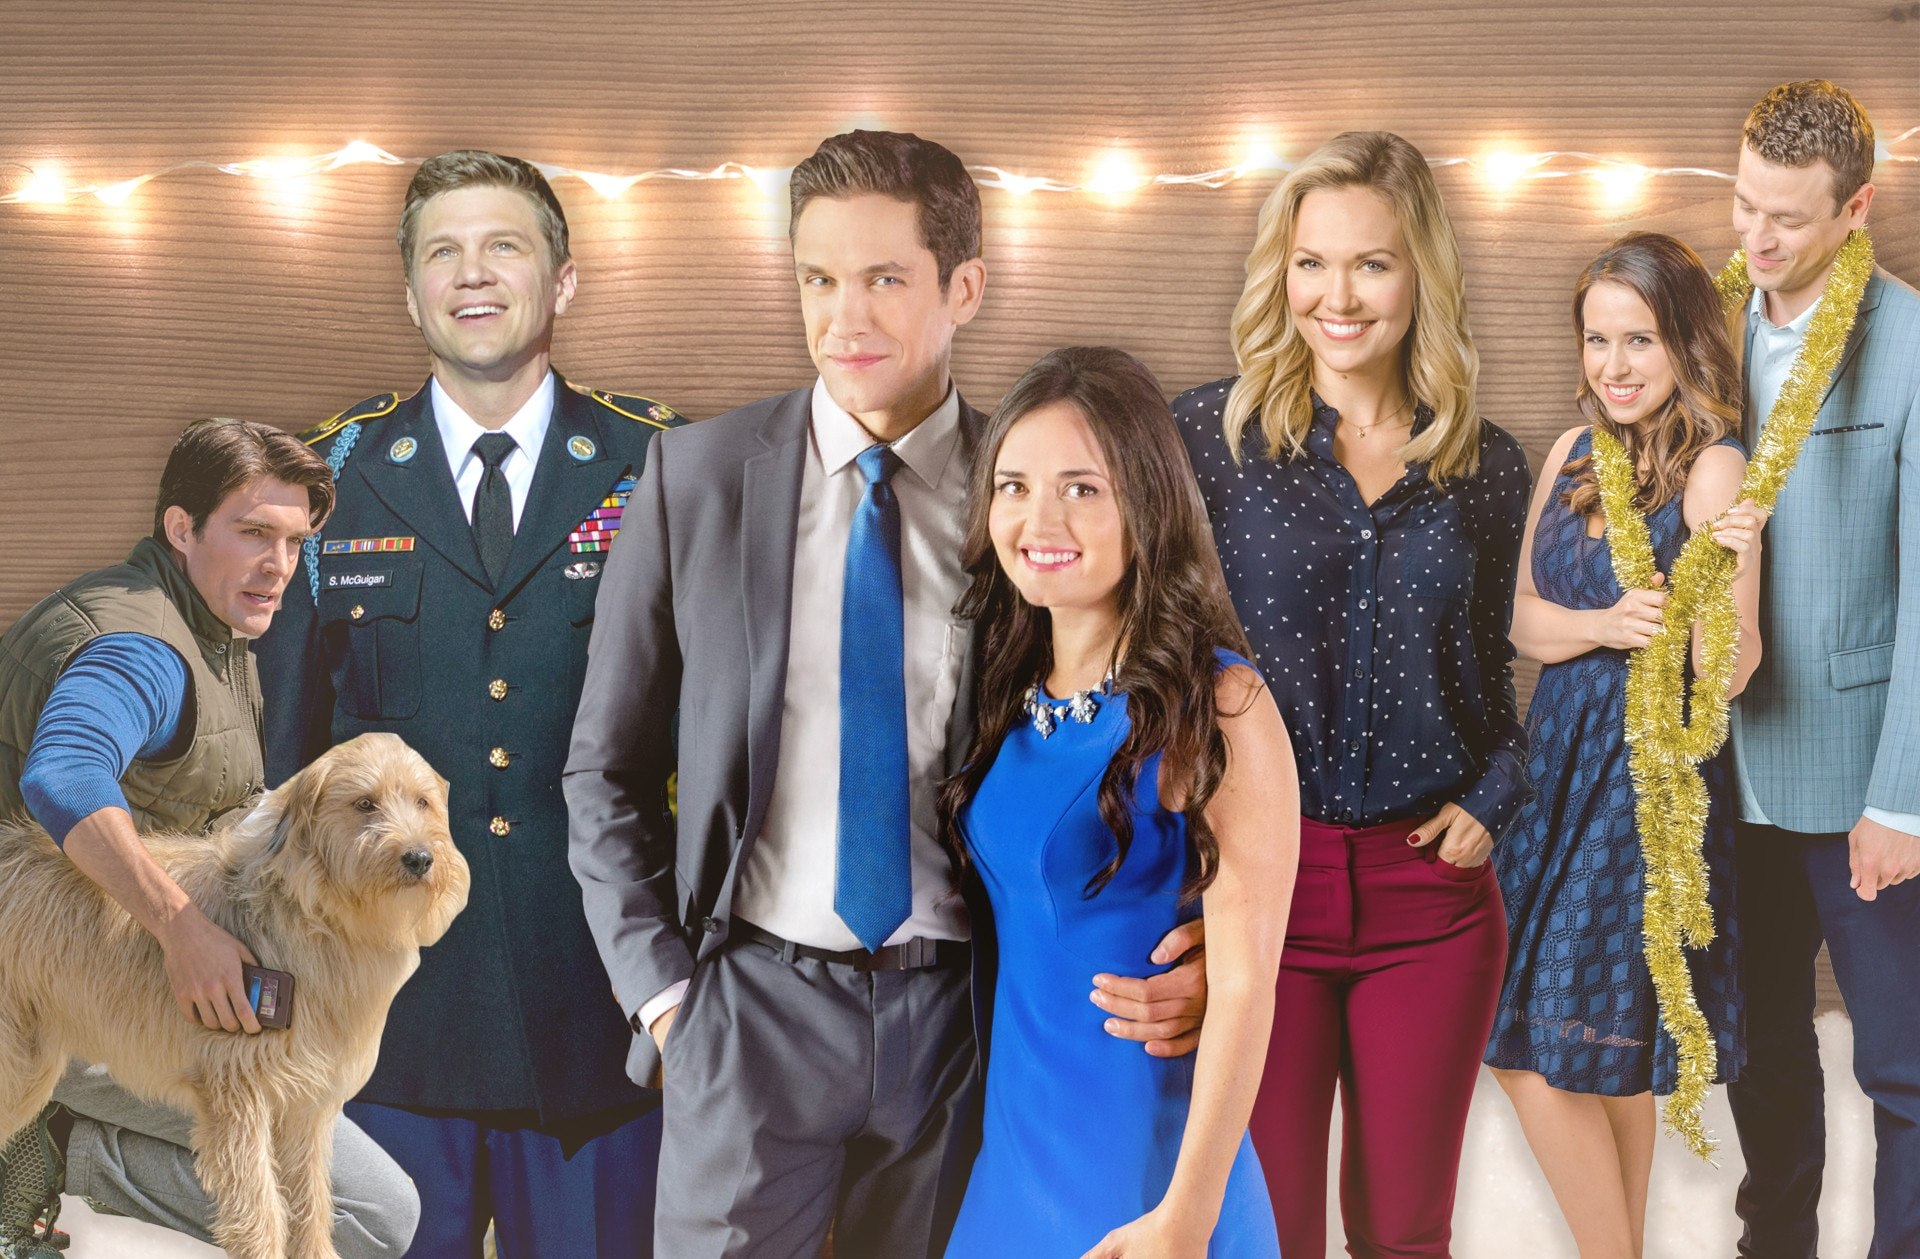 We Own Christmas: How The Hallmark Channel Found Massive Success ...